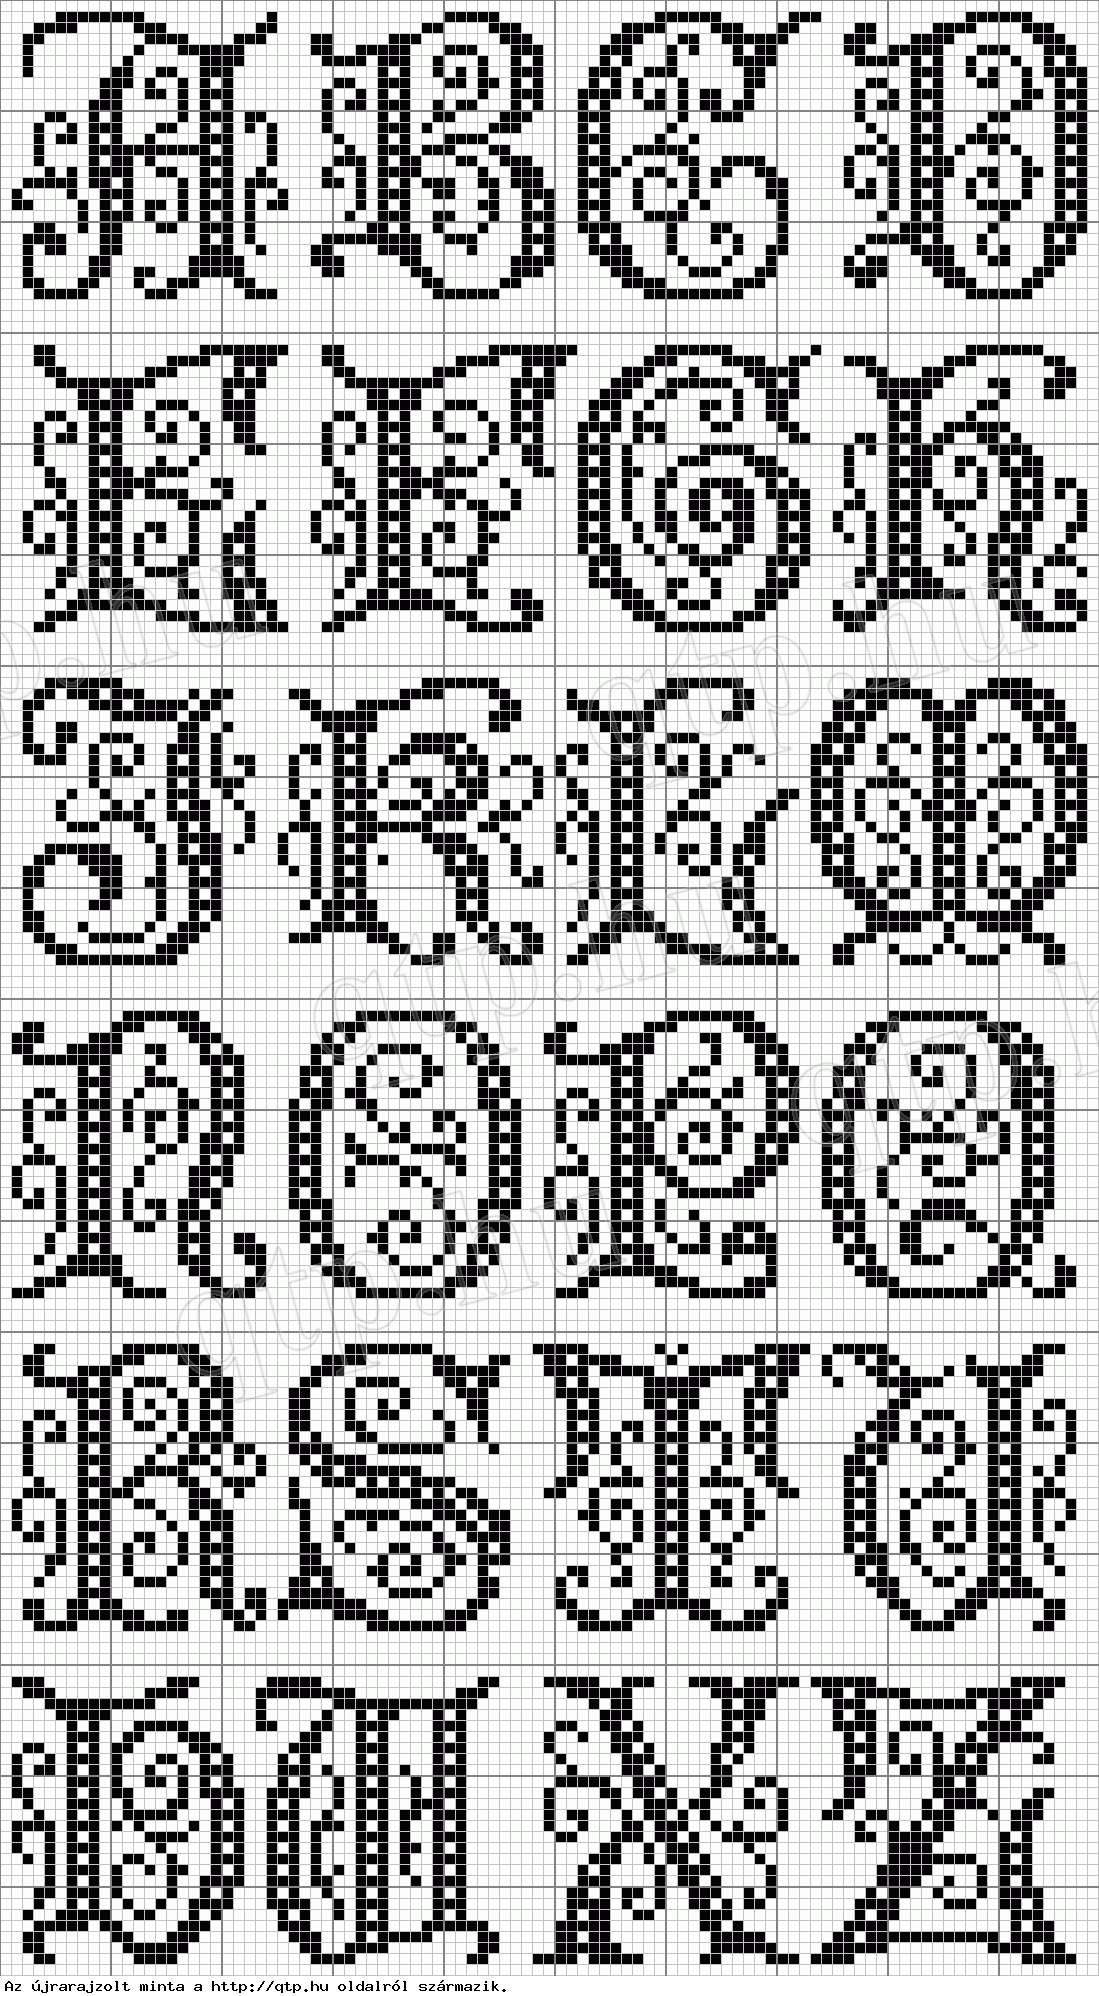 also a great site for Hungarian and other cross stitch patterns ...